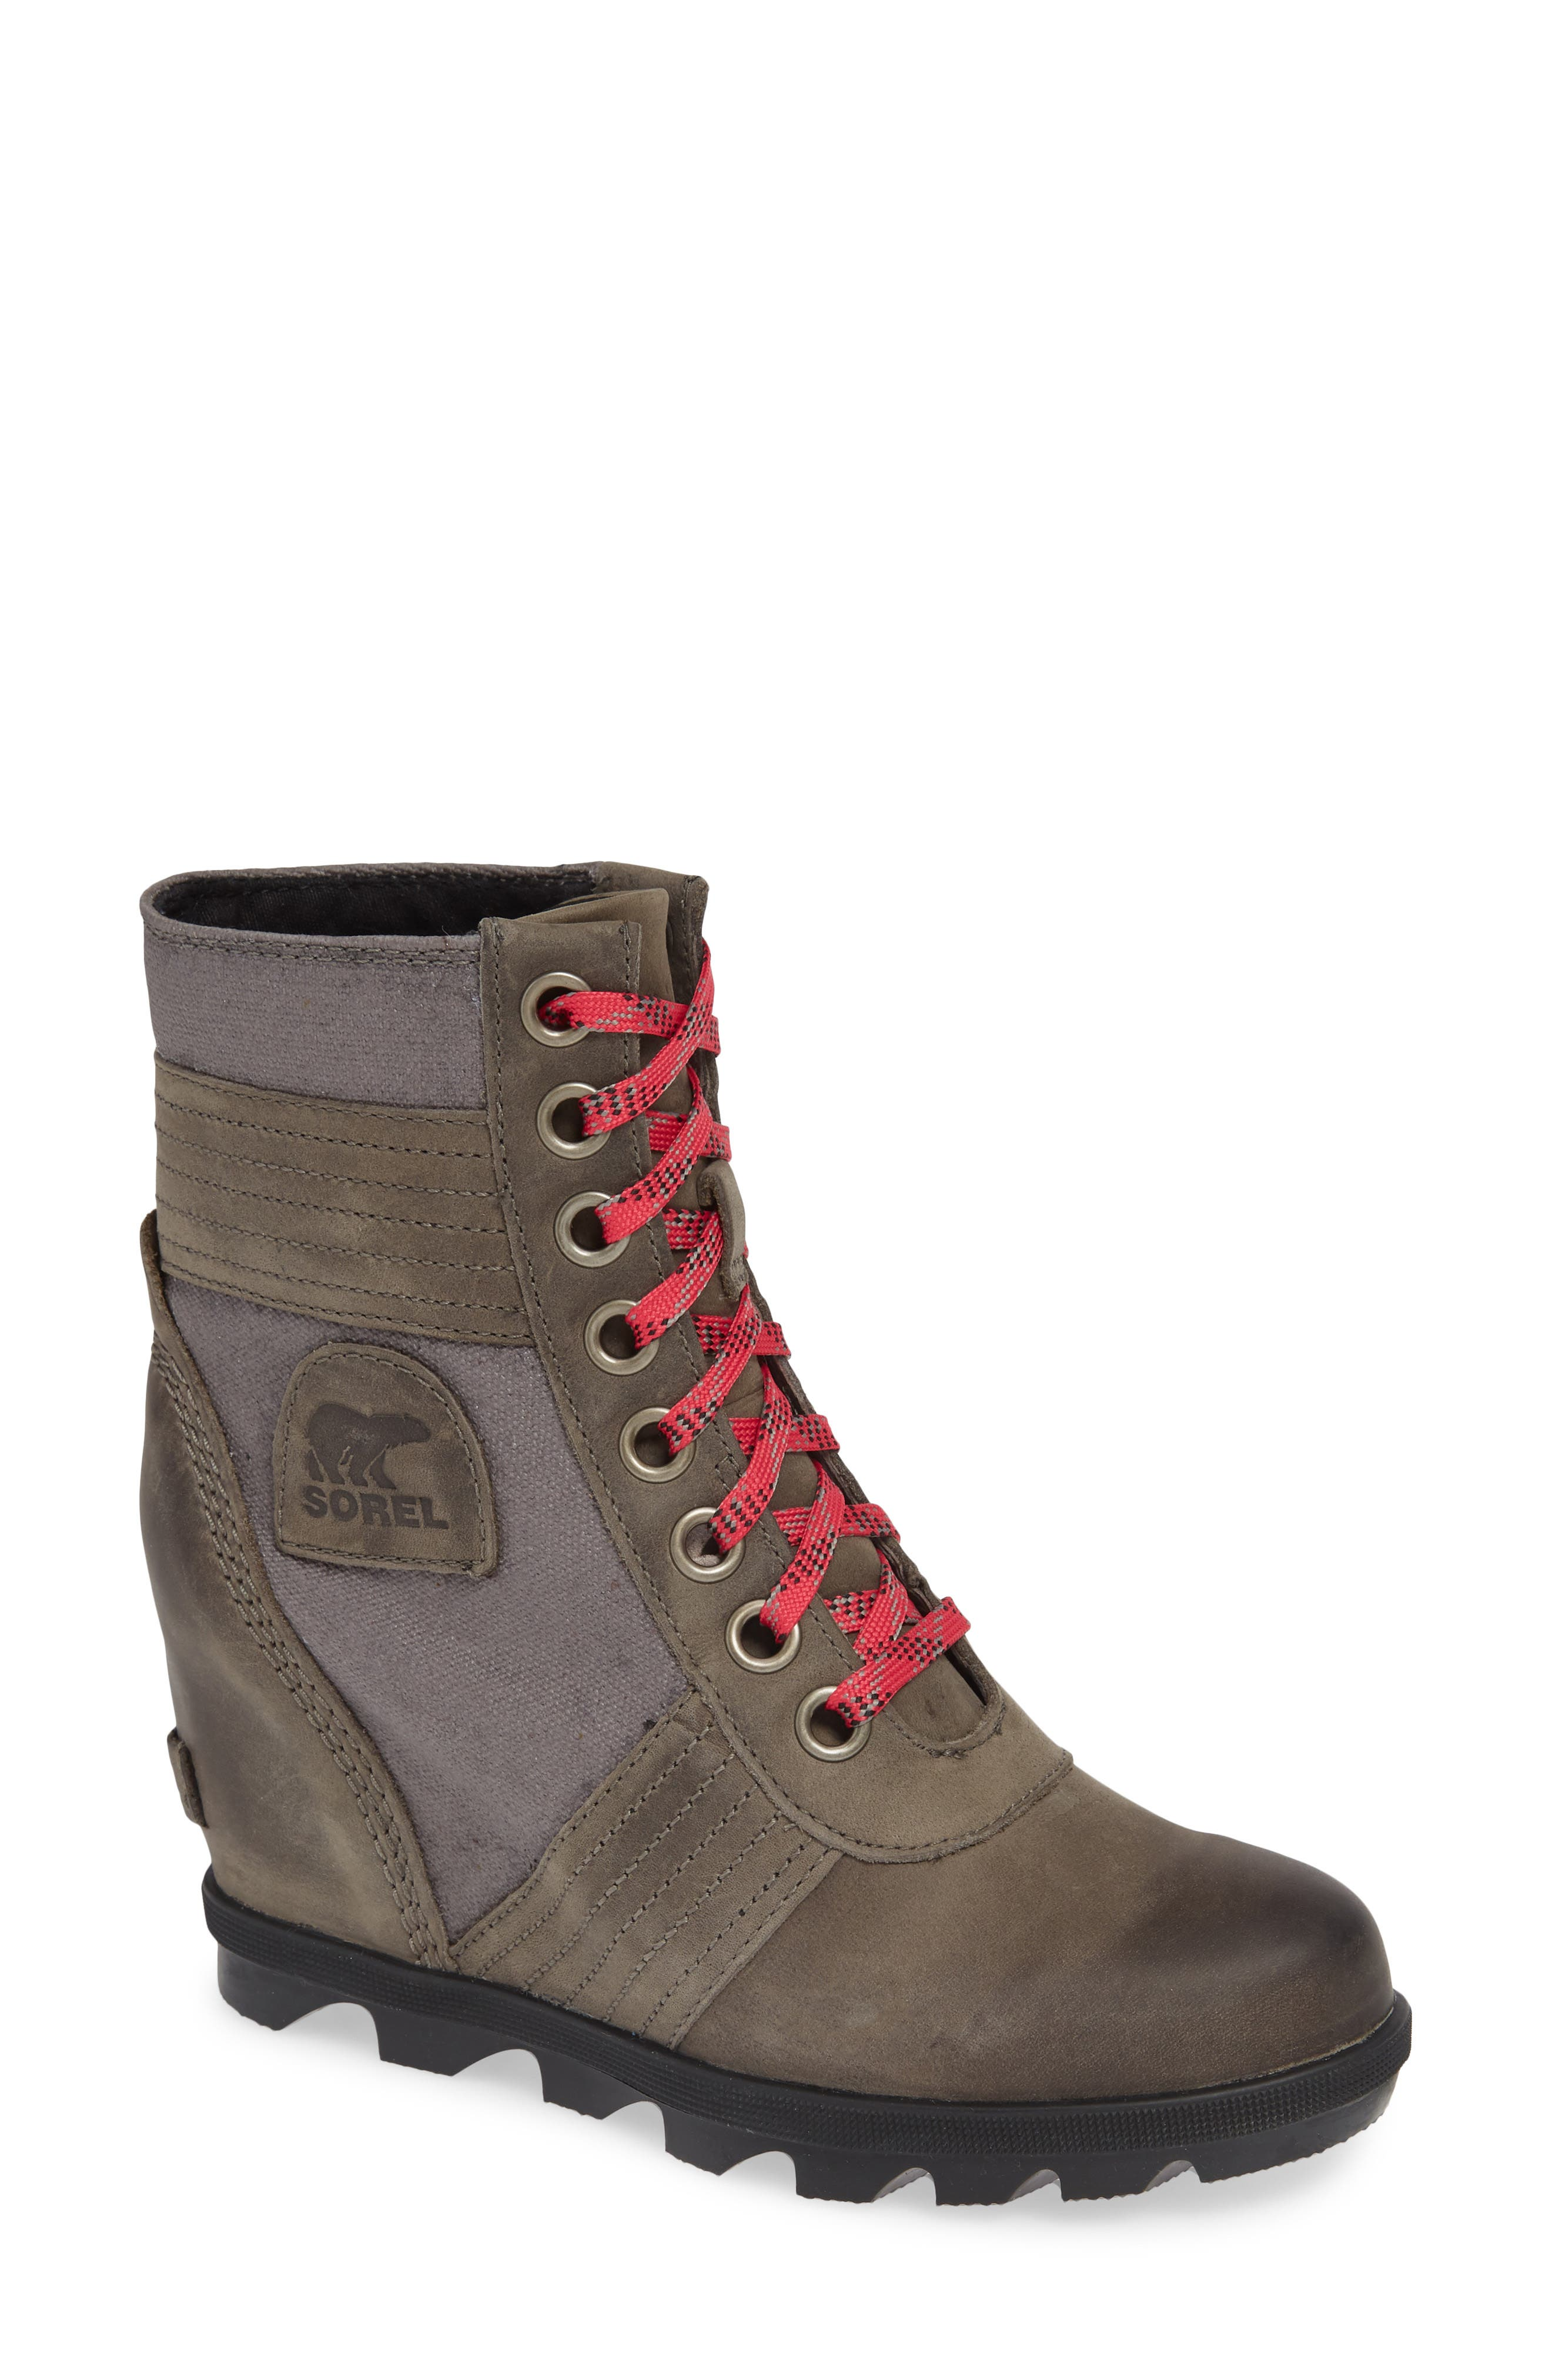 Sorel Lexie Wedge Waterproof Boot- Brown